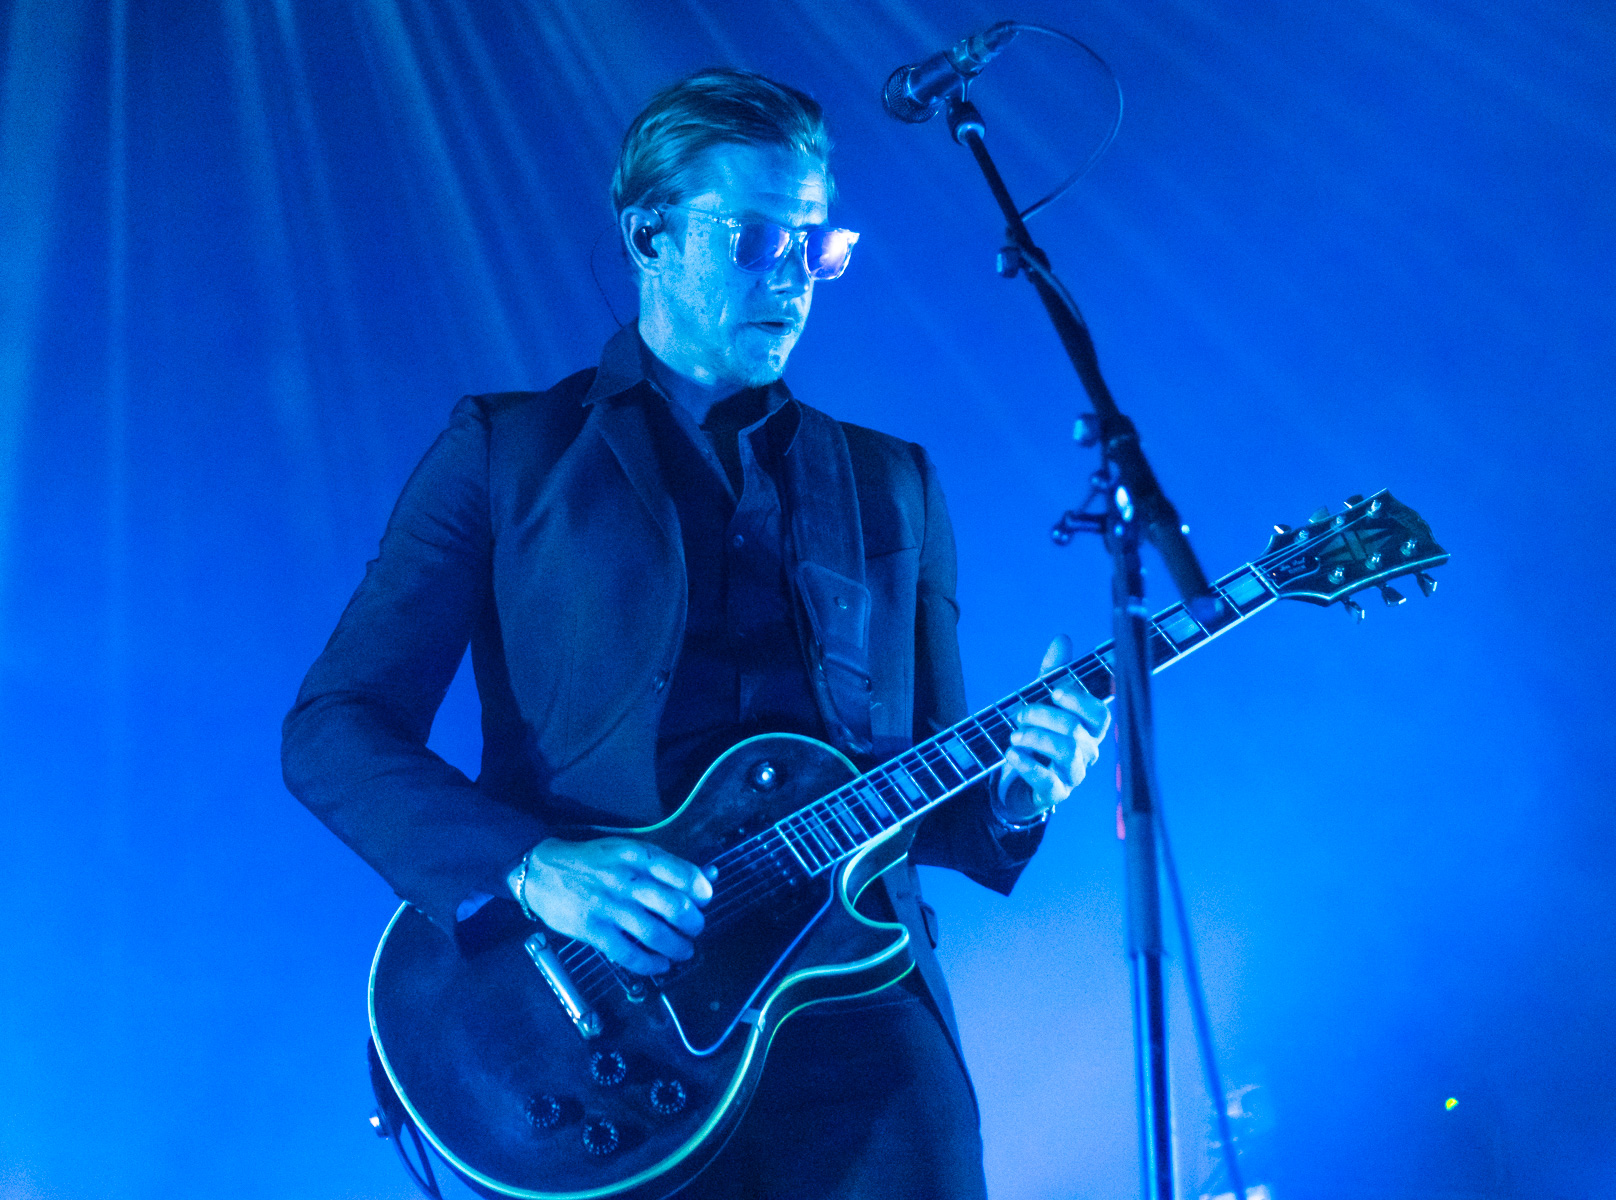 Interpol4